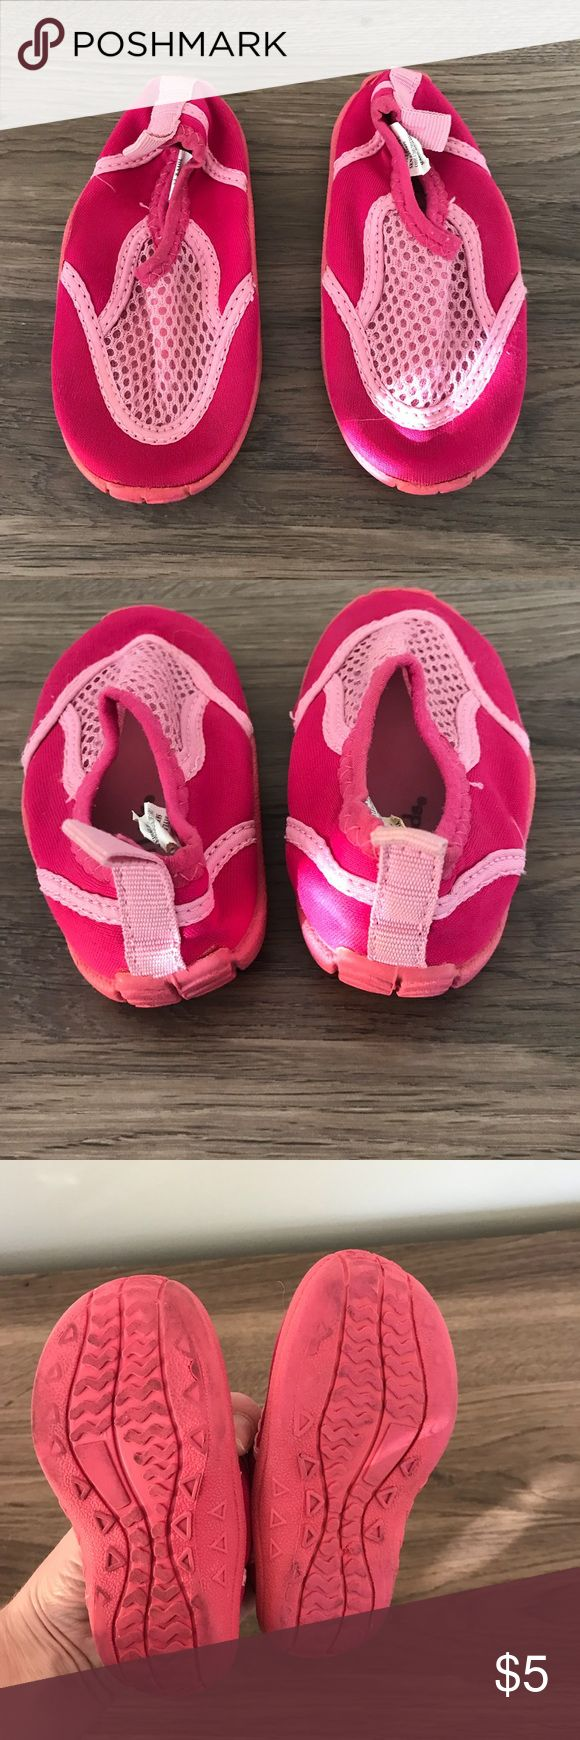 Toddler girls water shoes Pink water shoes for toddler. Pre-loved condition. Perfect for the beach!  Bundle to save, make me an offer!! Koala Kids Shoes Water Shoes